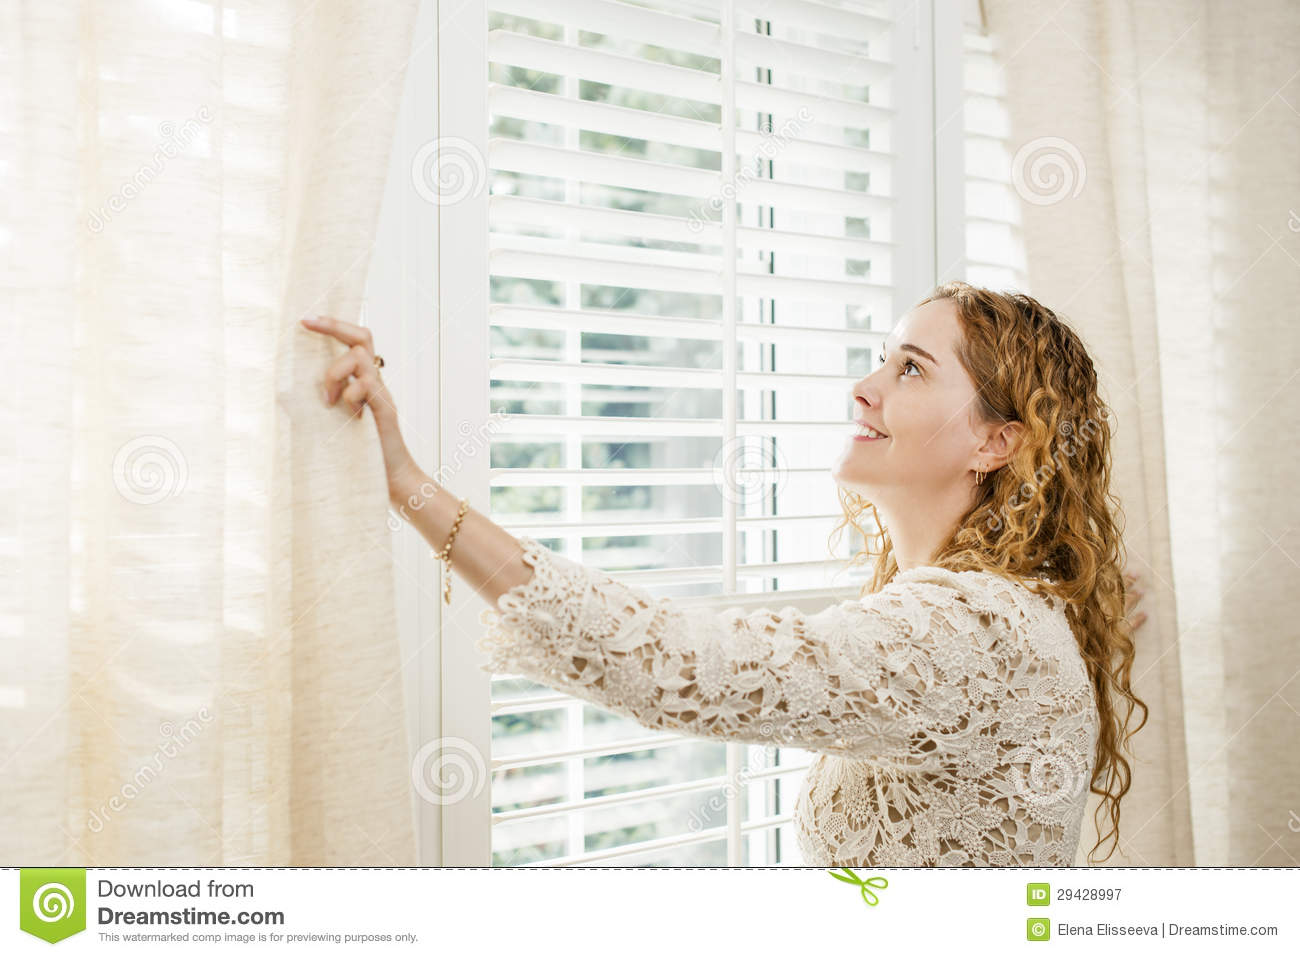 Smiling woman looking out window